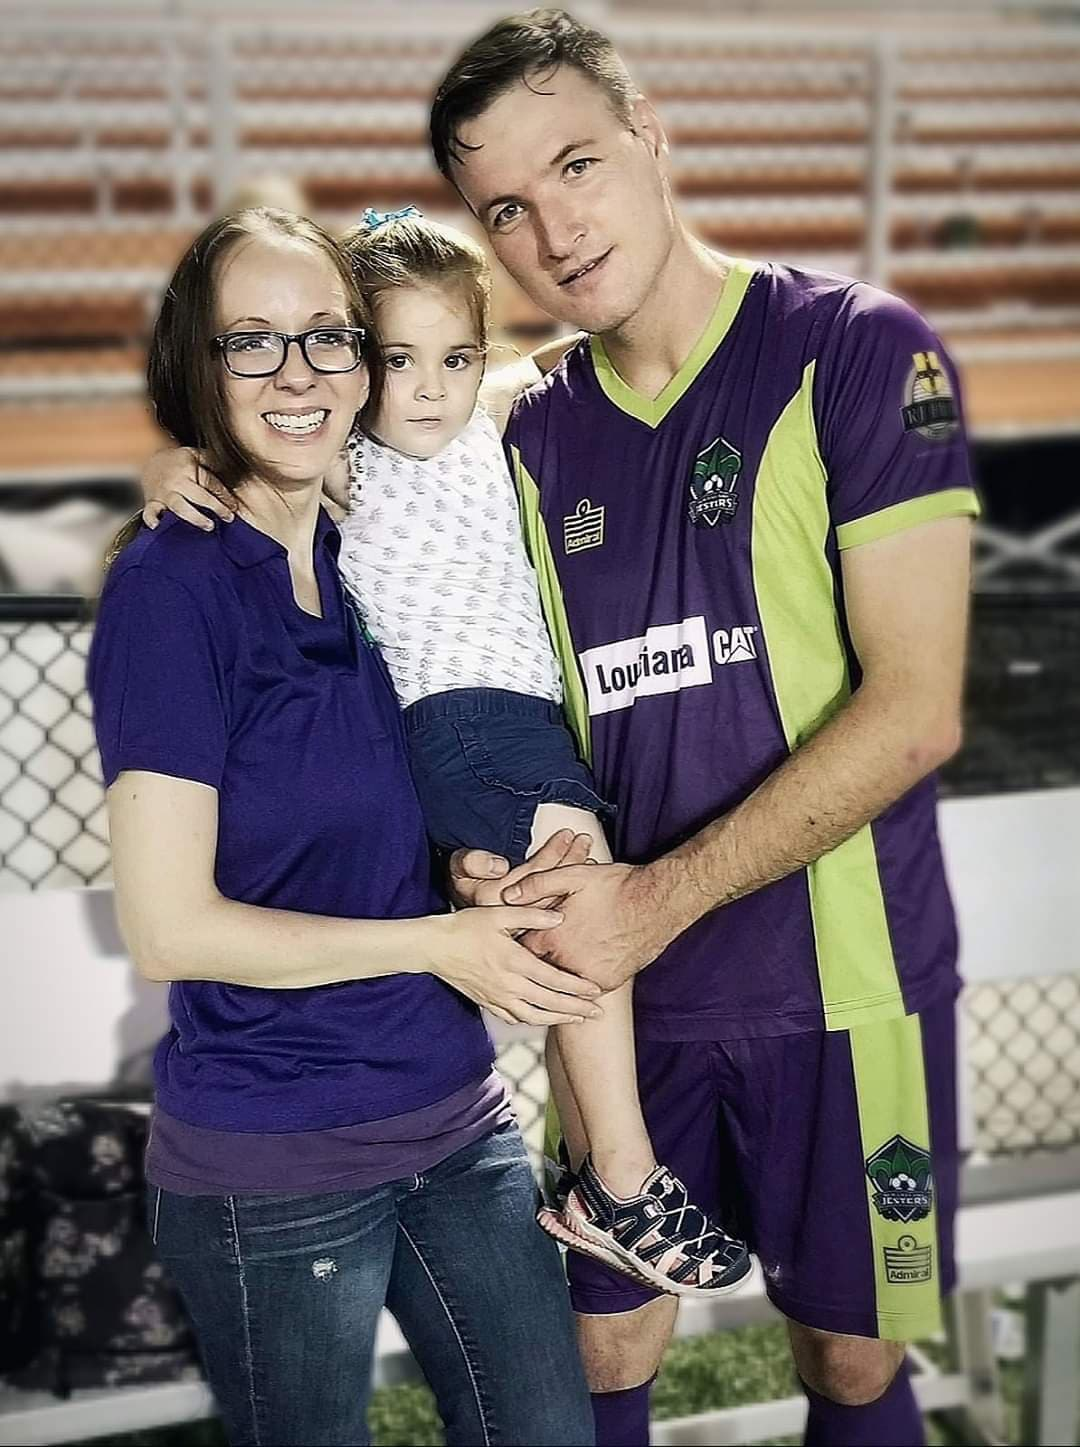 New Orleans Jesters soccer player Igor Shishcov poses with his wife, Julia and his daughter Alina. The Jesters